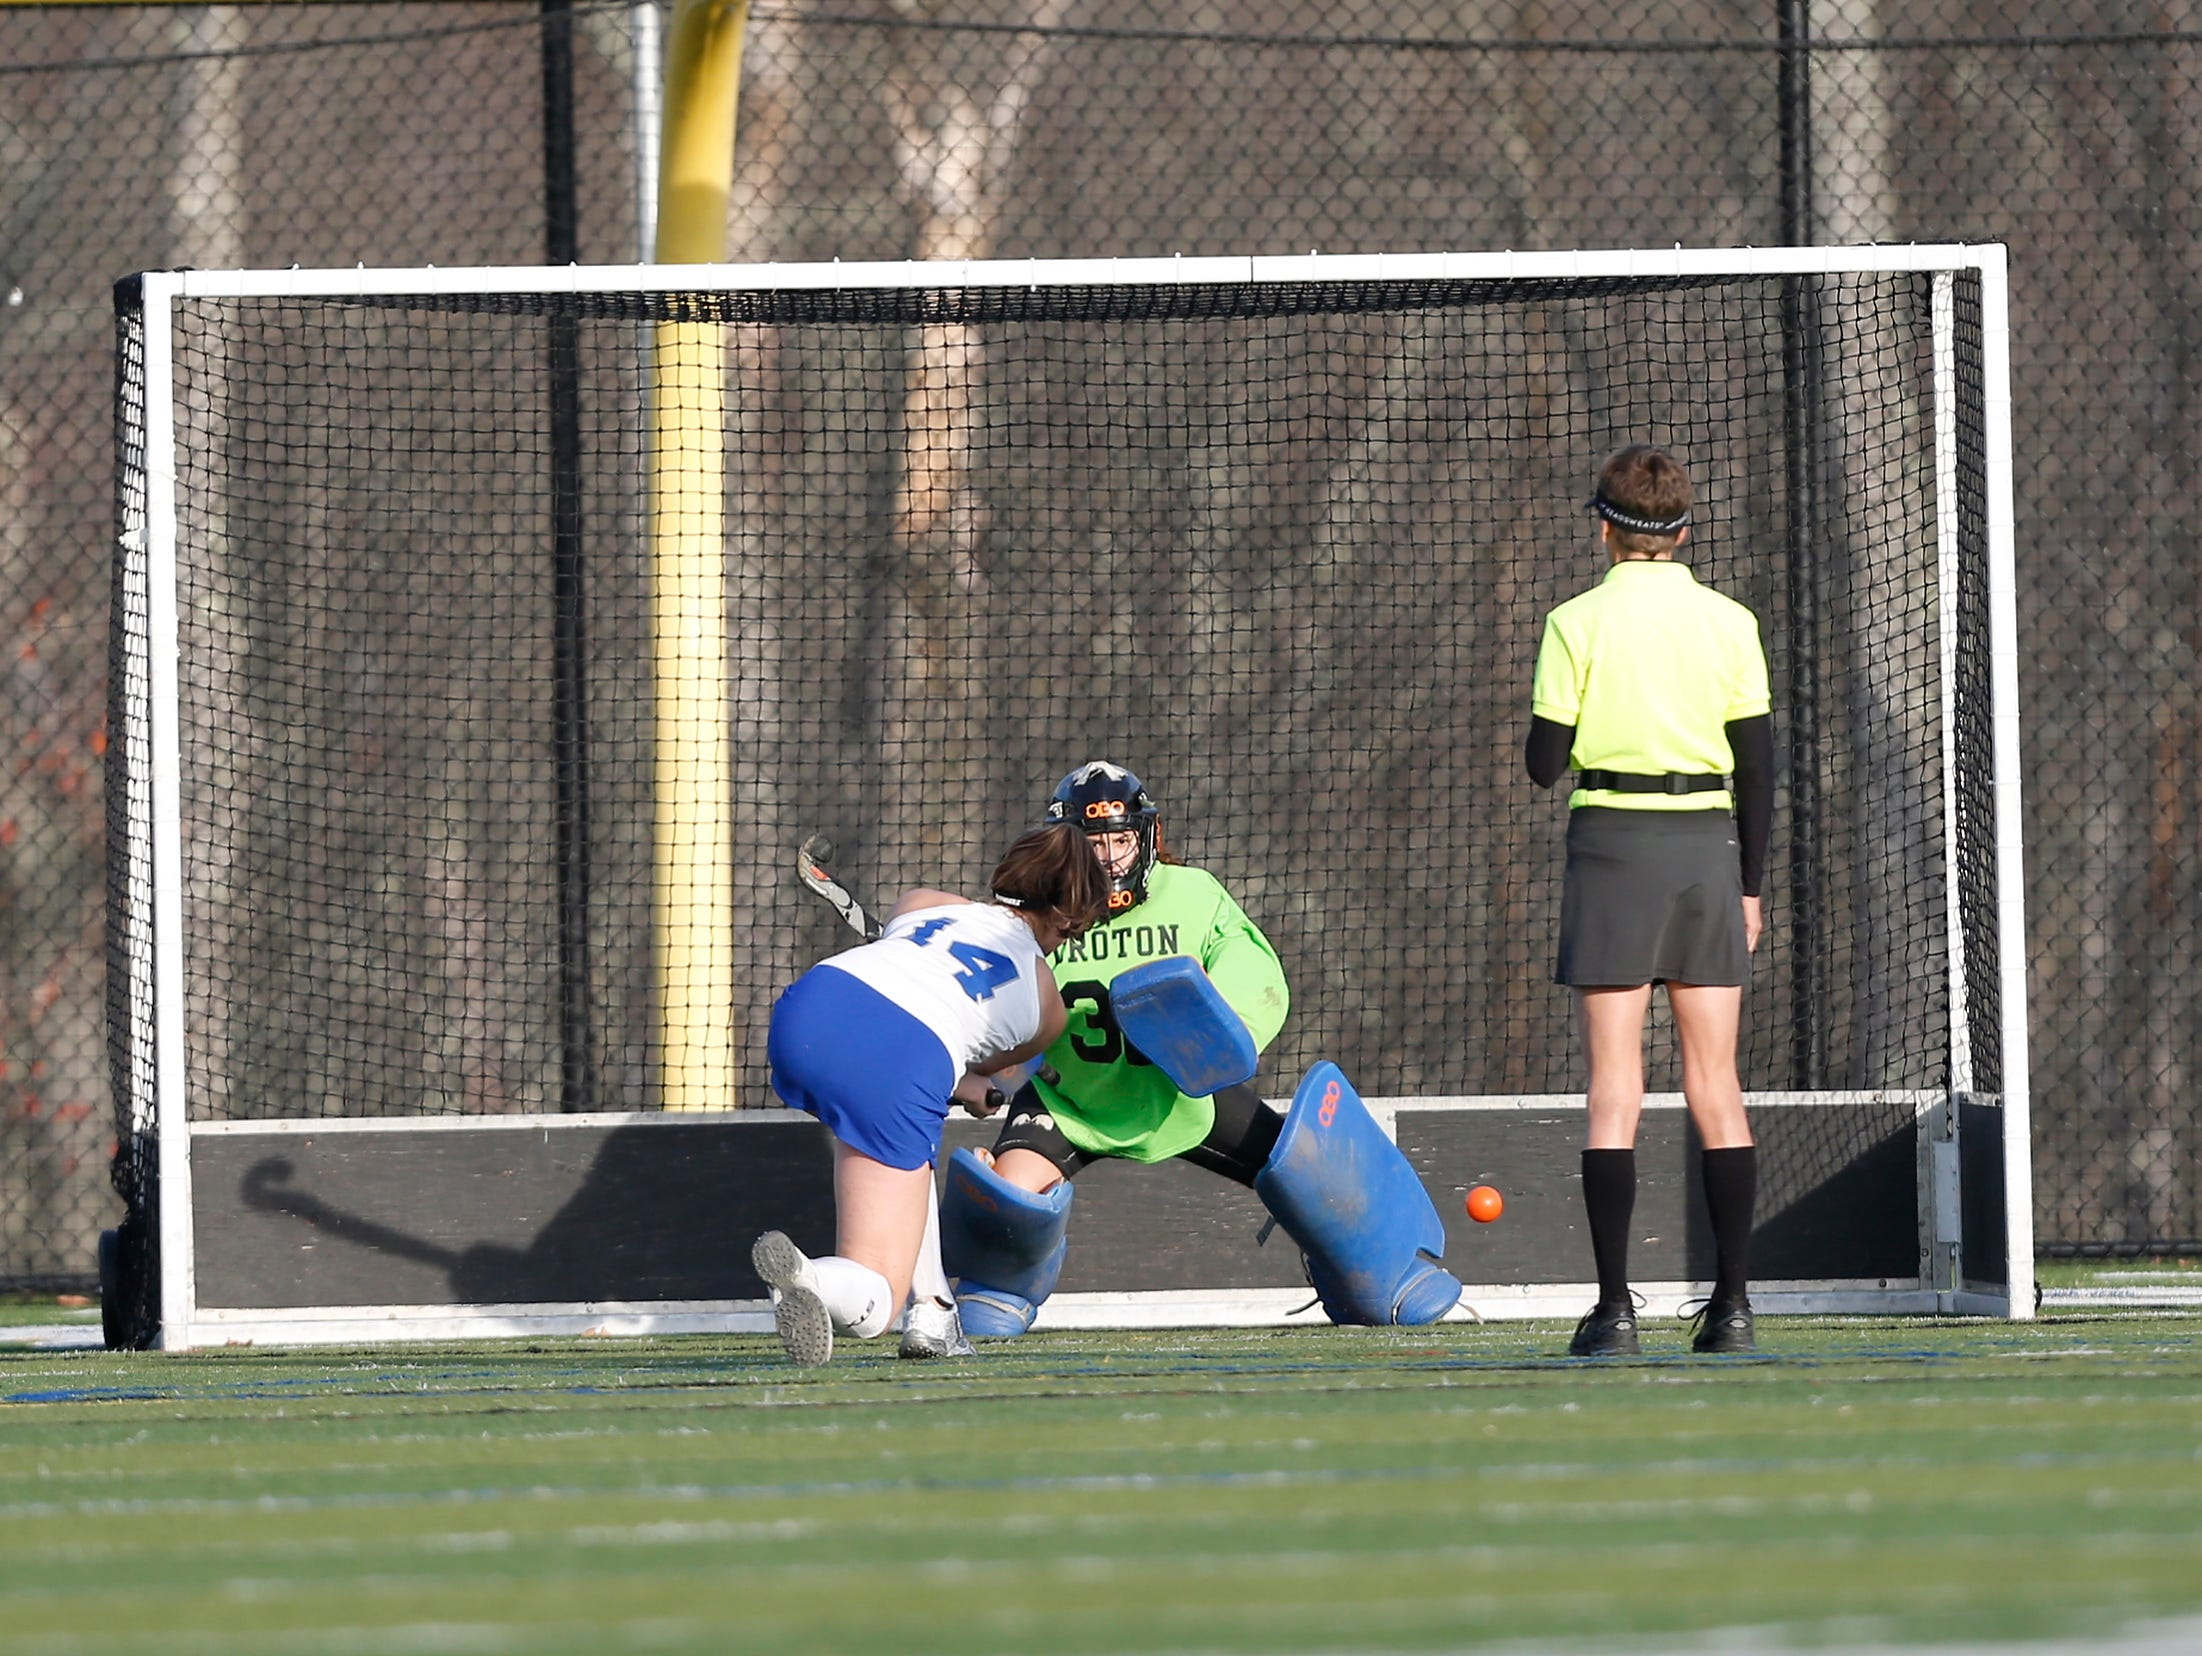 Bronxville's Hadley Barr (14) puts a penalty shot past Croton golie Maddie Camilleri (32) during their 7-1 win over Croton in the Class C field hockey sectiion finals at Brewster High School on Tuesday, November 1, 2016.